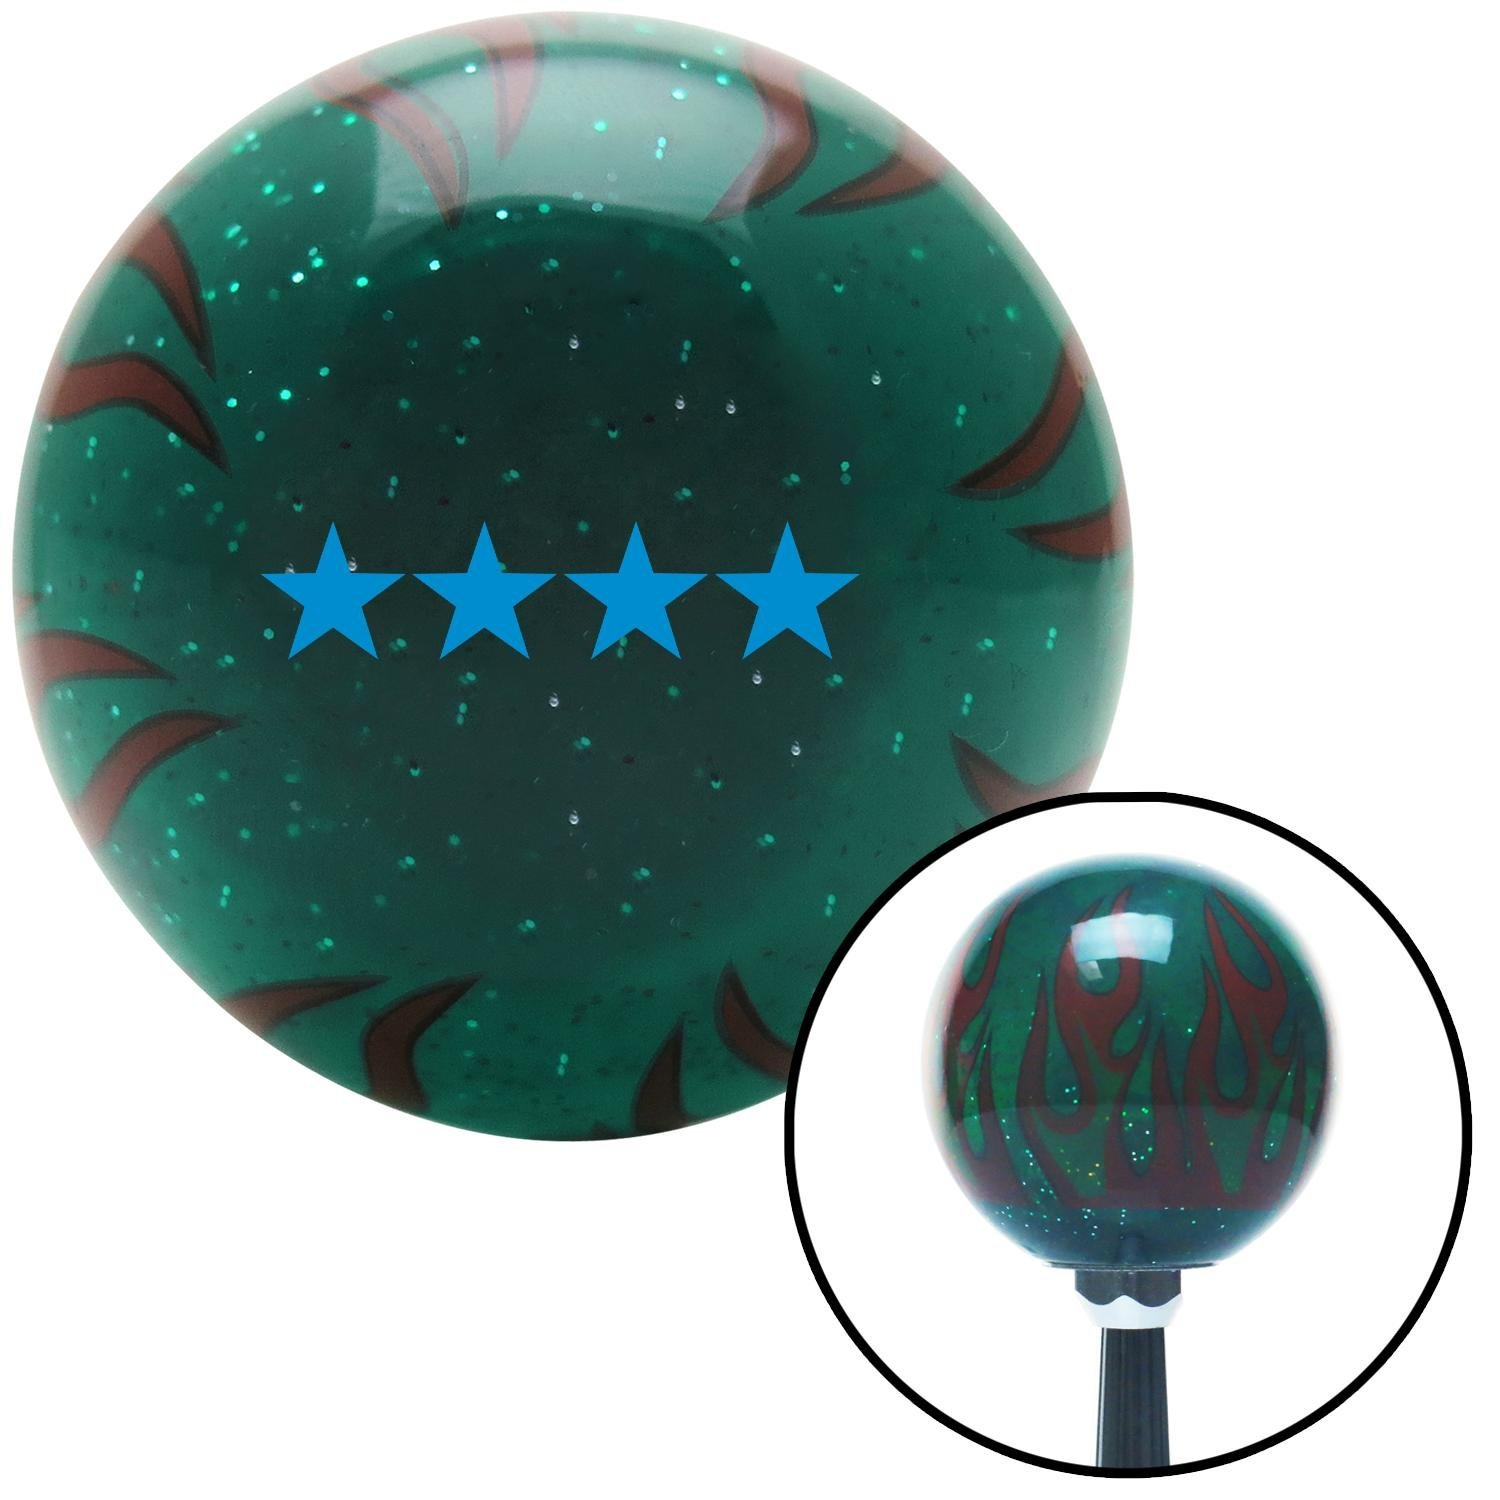 American Shifter 266478 Green Flame Metal Flake Shift Knob with M16 x 1.5 Insert Blue Officer 10 - Admiral